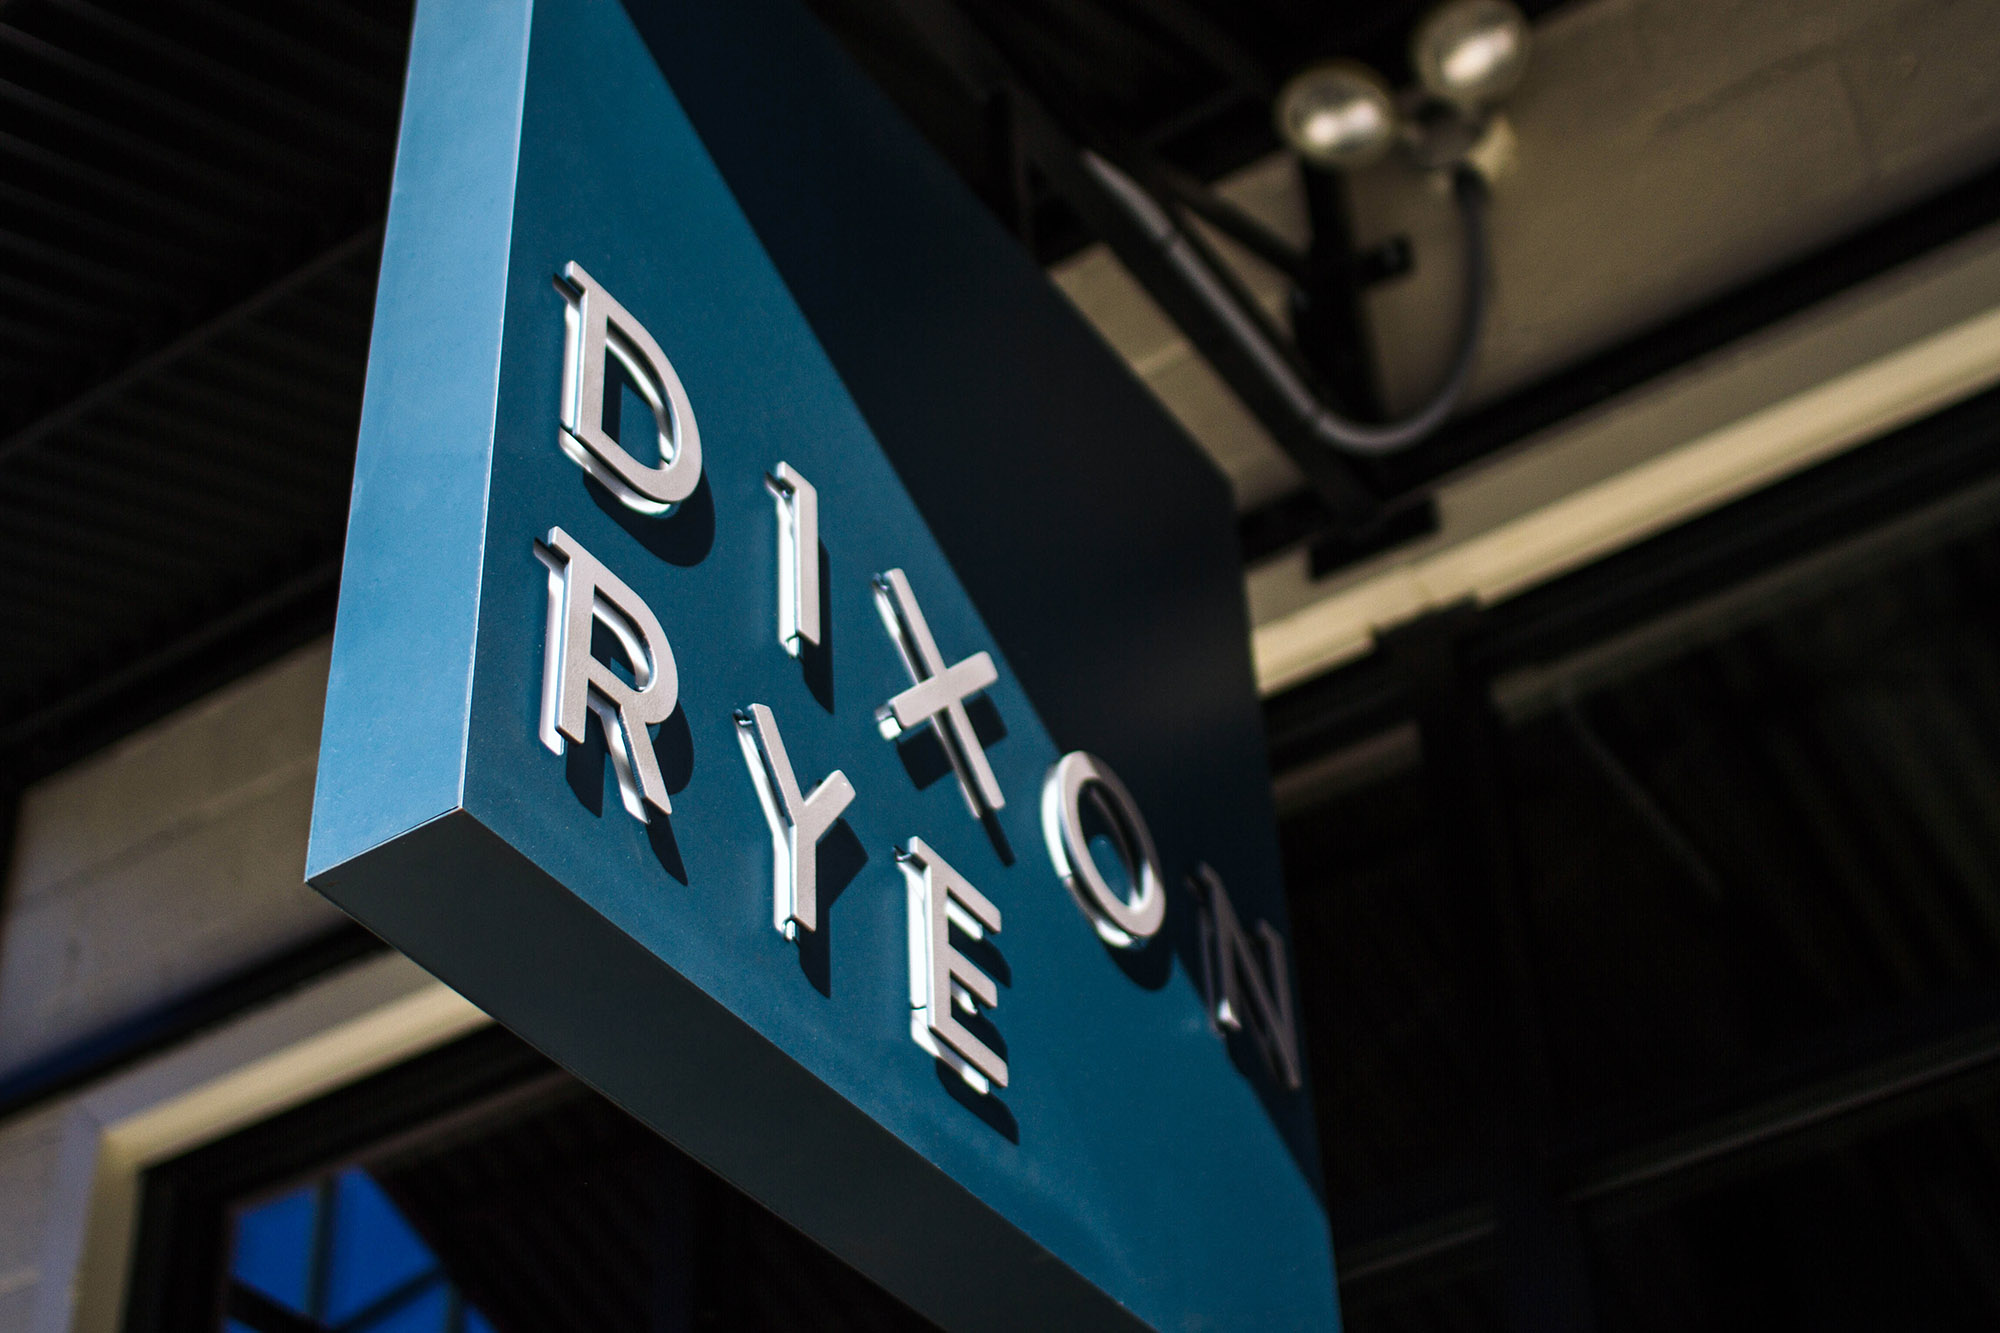 Up close detail of custom logo letters design for Dixon Rye on the Atlanta retail store's side entrance sign.